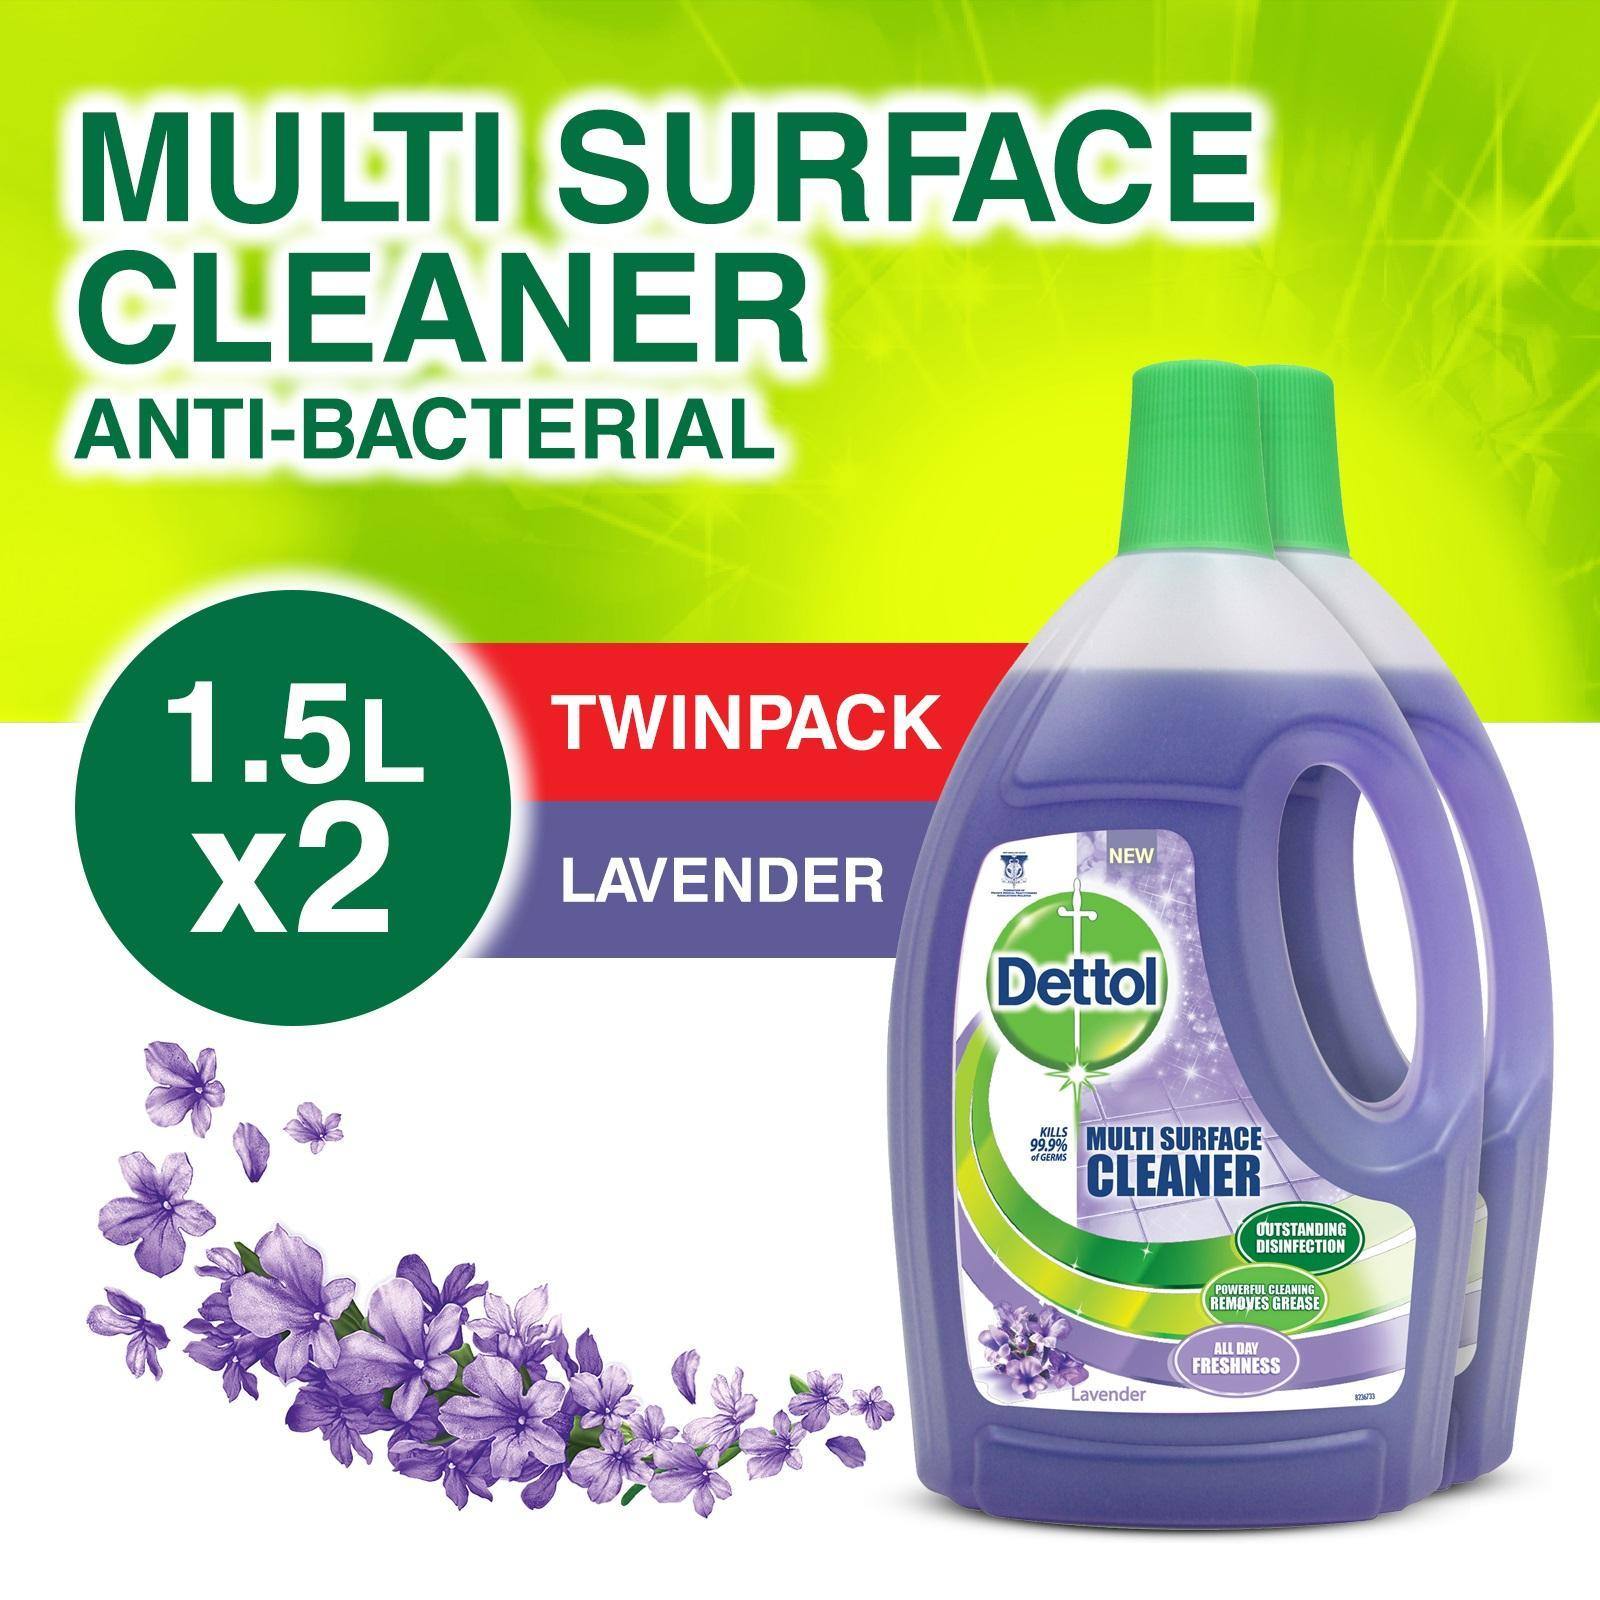 Dettol 4-in-1 Disinfectant Multi Surface Cleaner Lavender 2x 1.5L